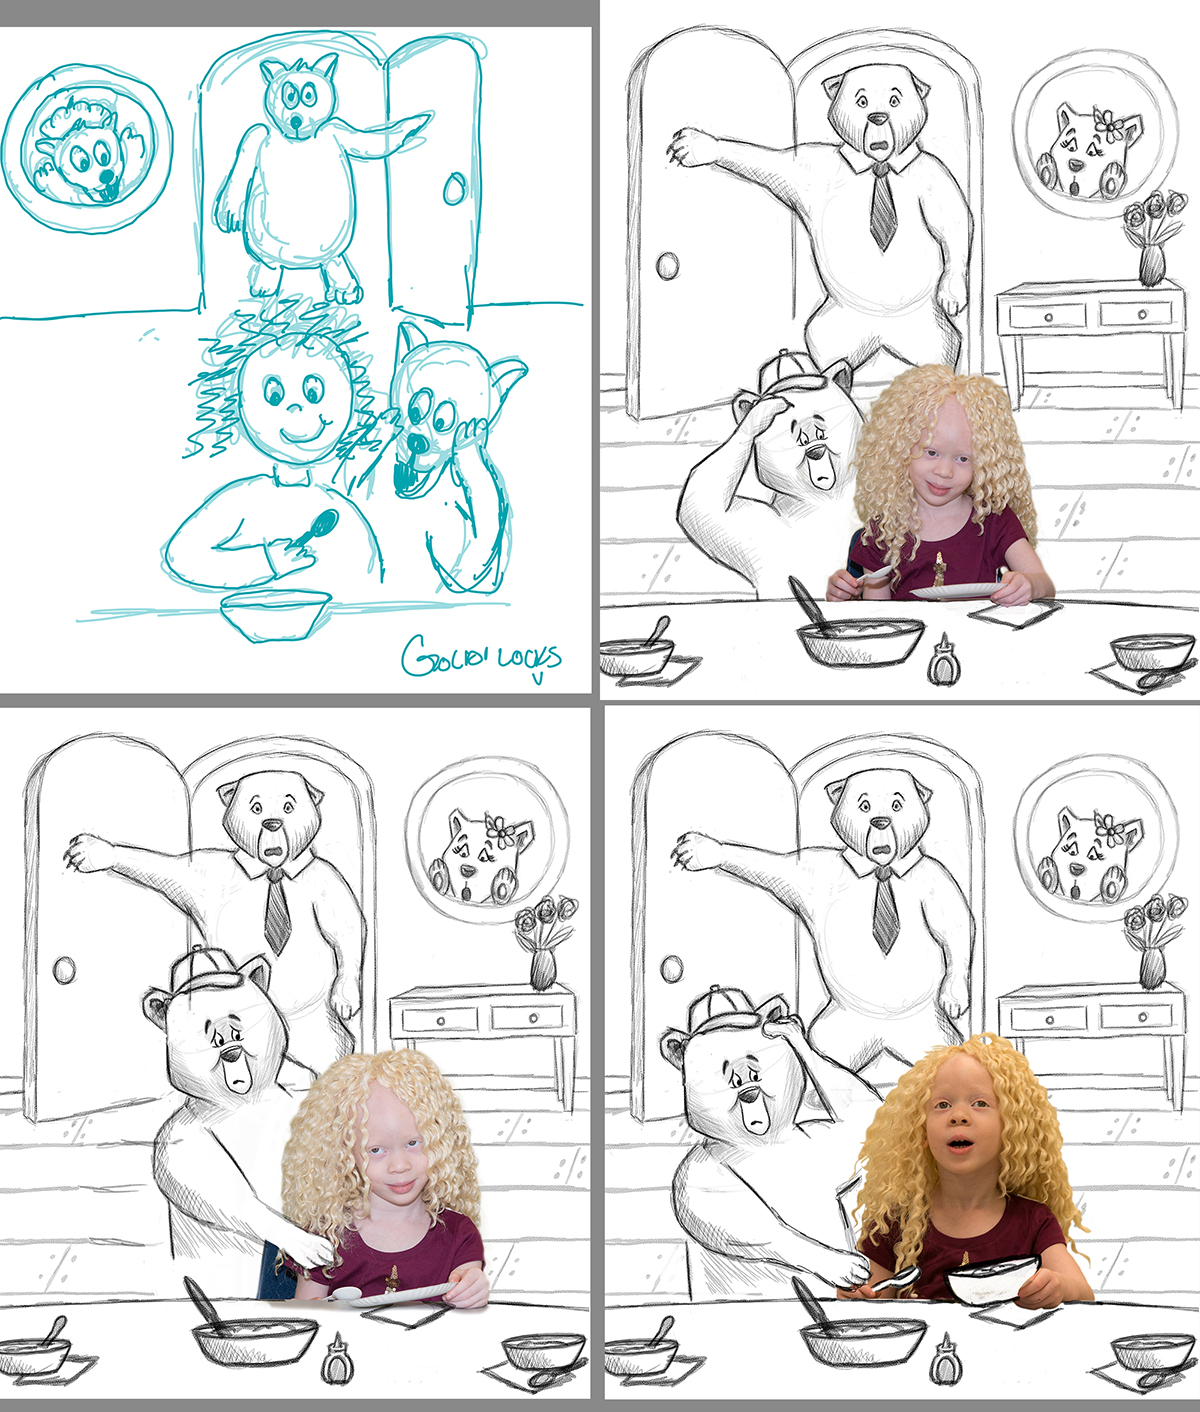 Goldilocks - forum sketches.jpg